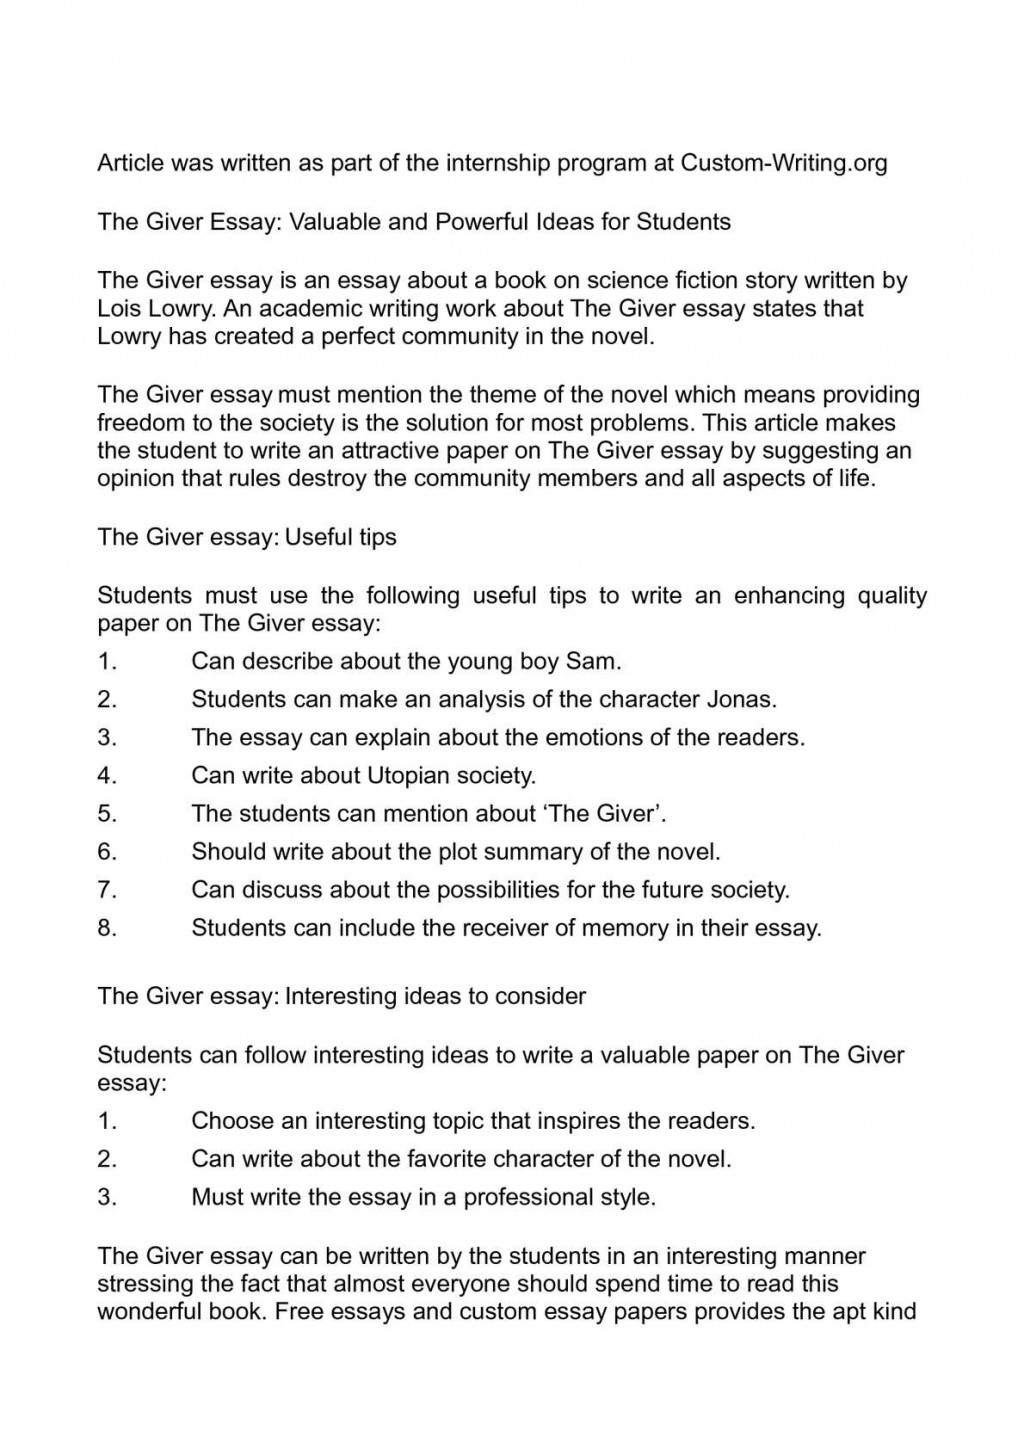 004 The Giver Essay P1 Fearsome Topics Ideas Questions Large